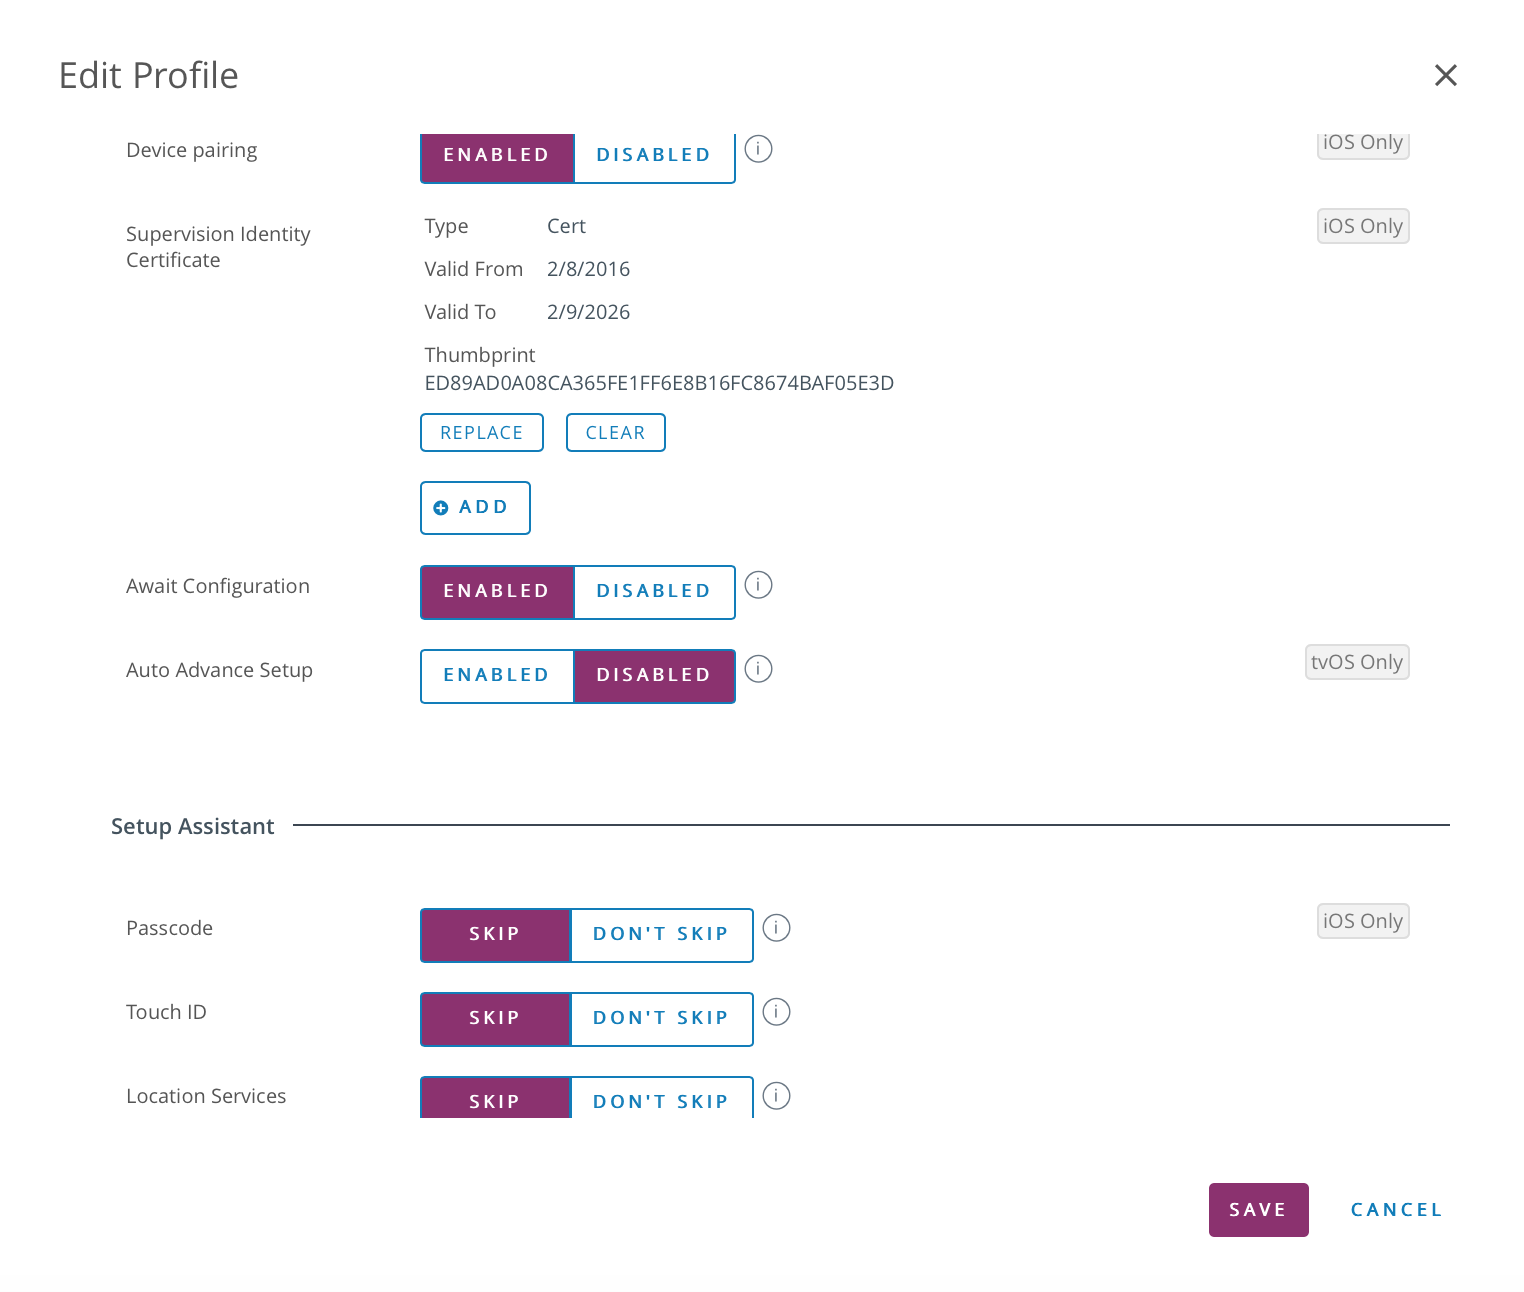 Import your Supervision Identity into a DEP Profile